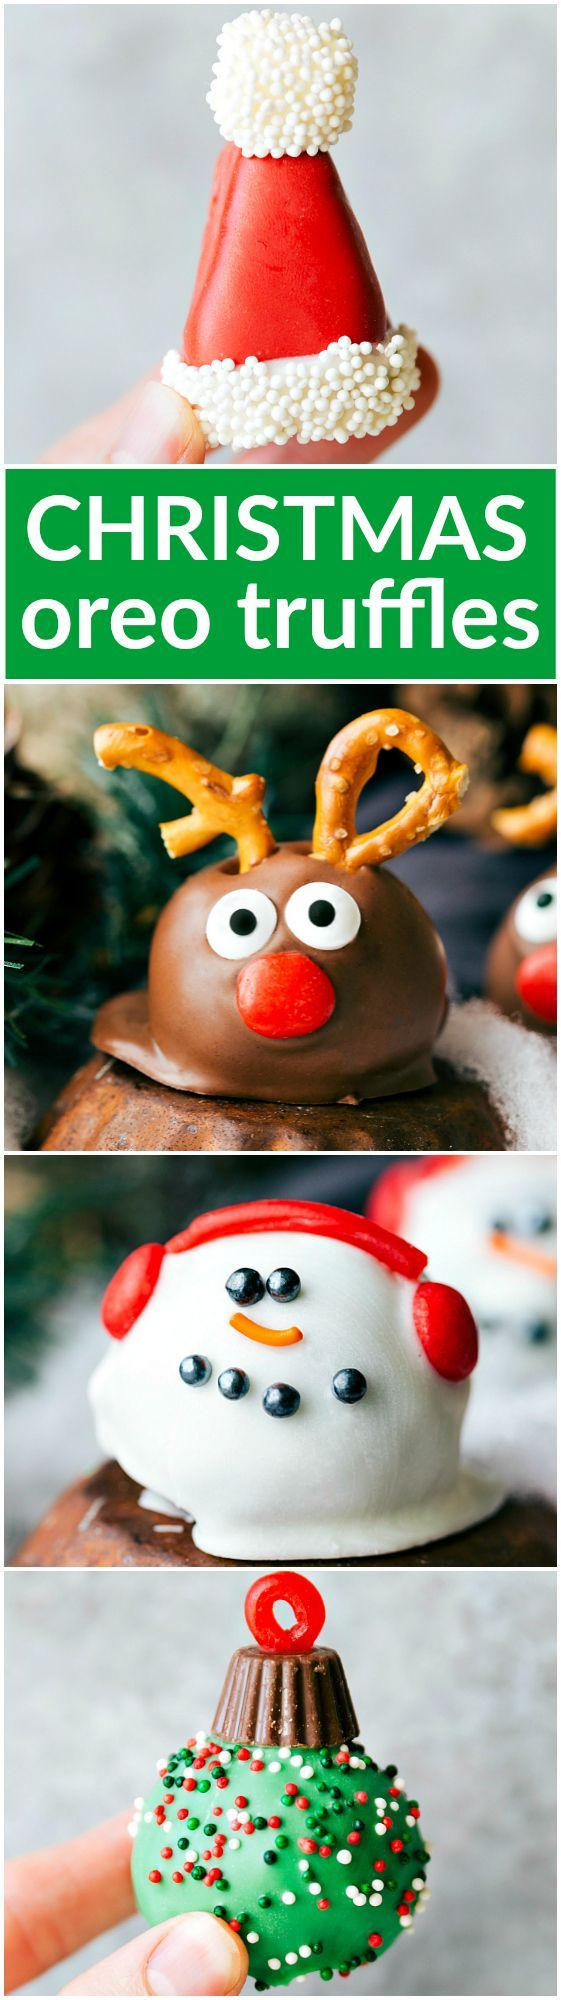 Five different ways to dress up an OREO Cookie truffle for Christmas -- Santa's hat, Reindeer, Ornament, Snowman, and the